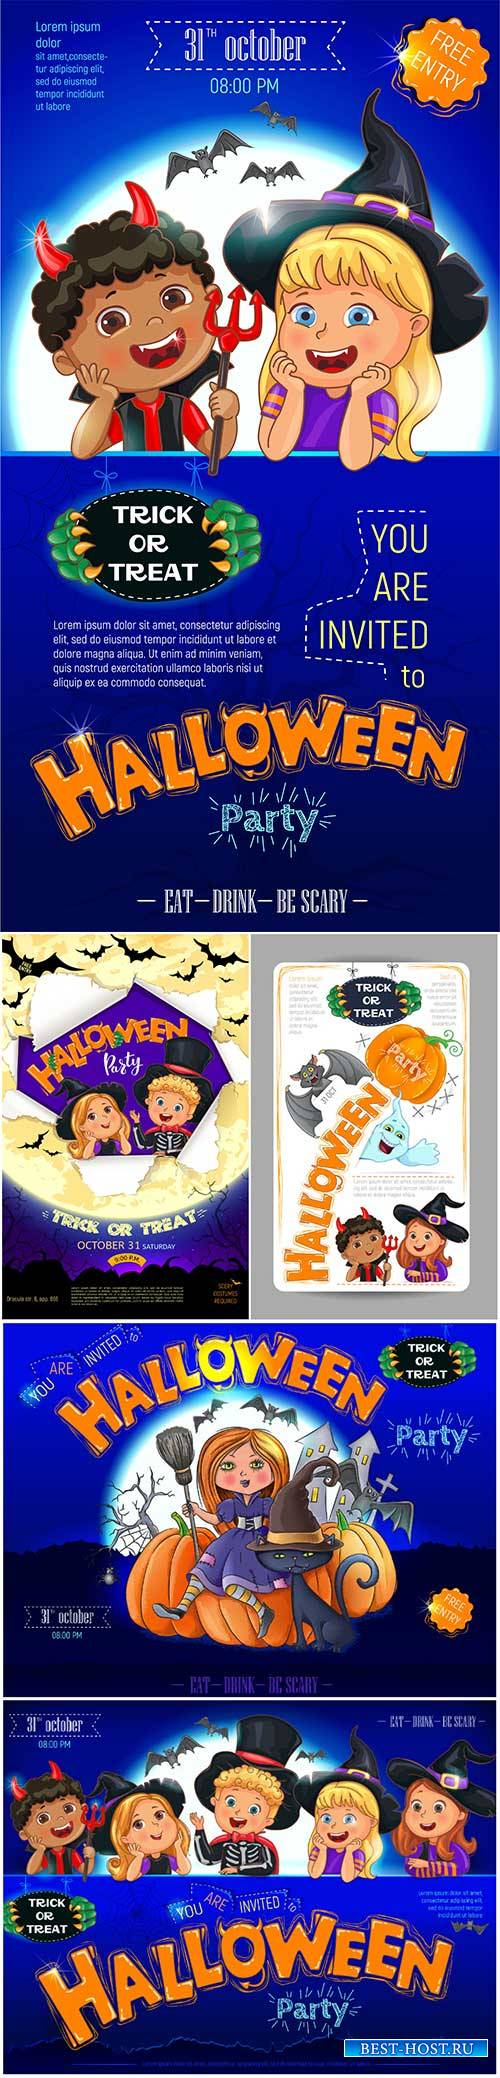 Halloween party design with cute kids invitation flyer